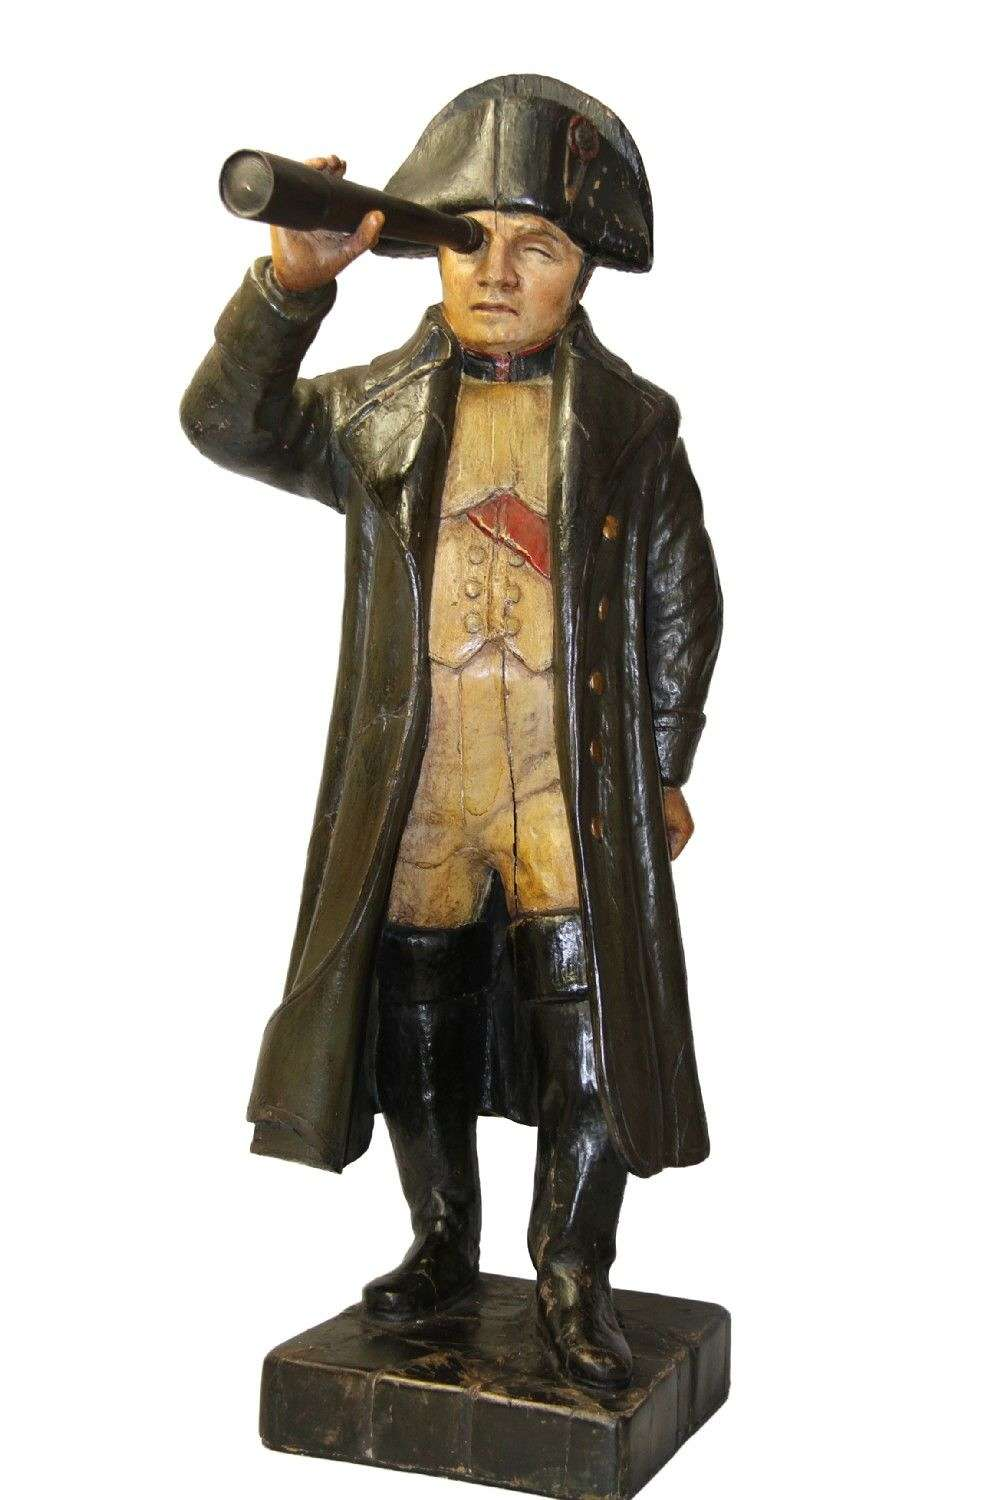 A Very Large Wooden Figure Of Napoleon Bonaparte Over 100cm Tall